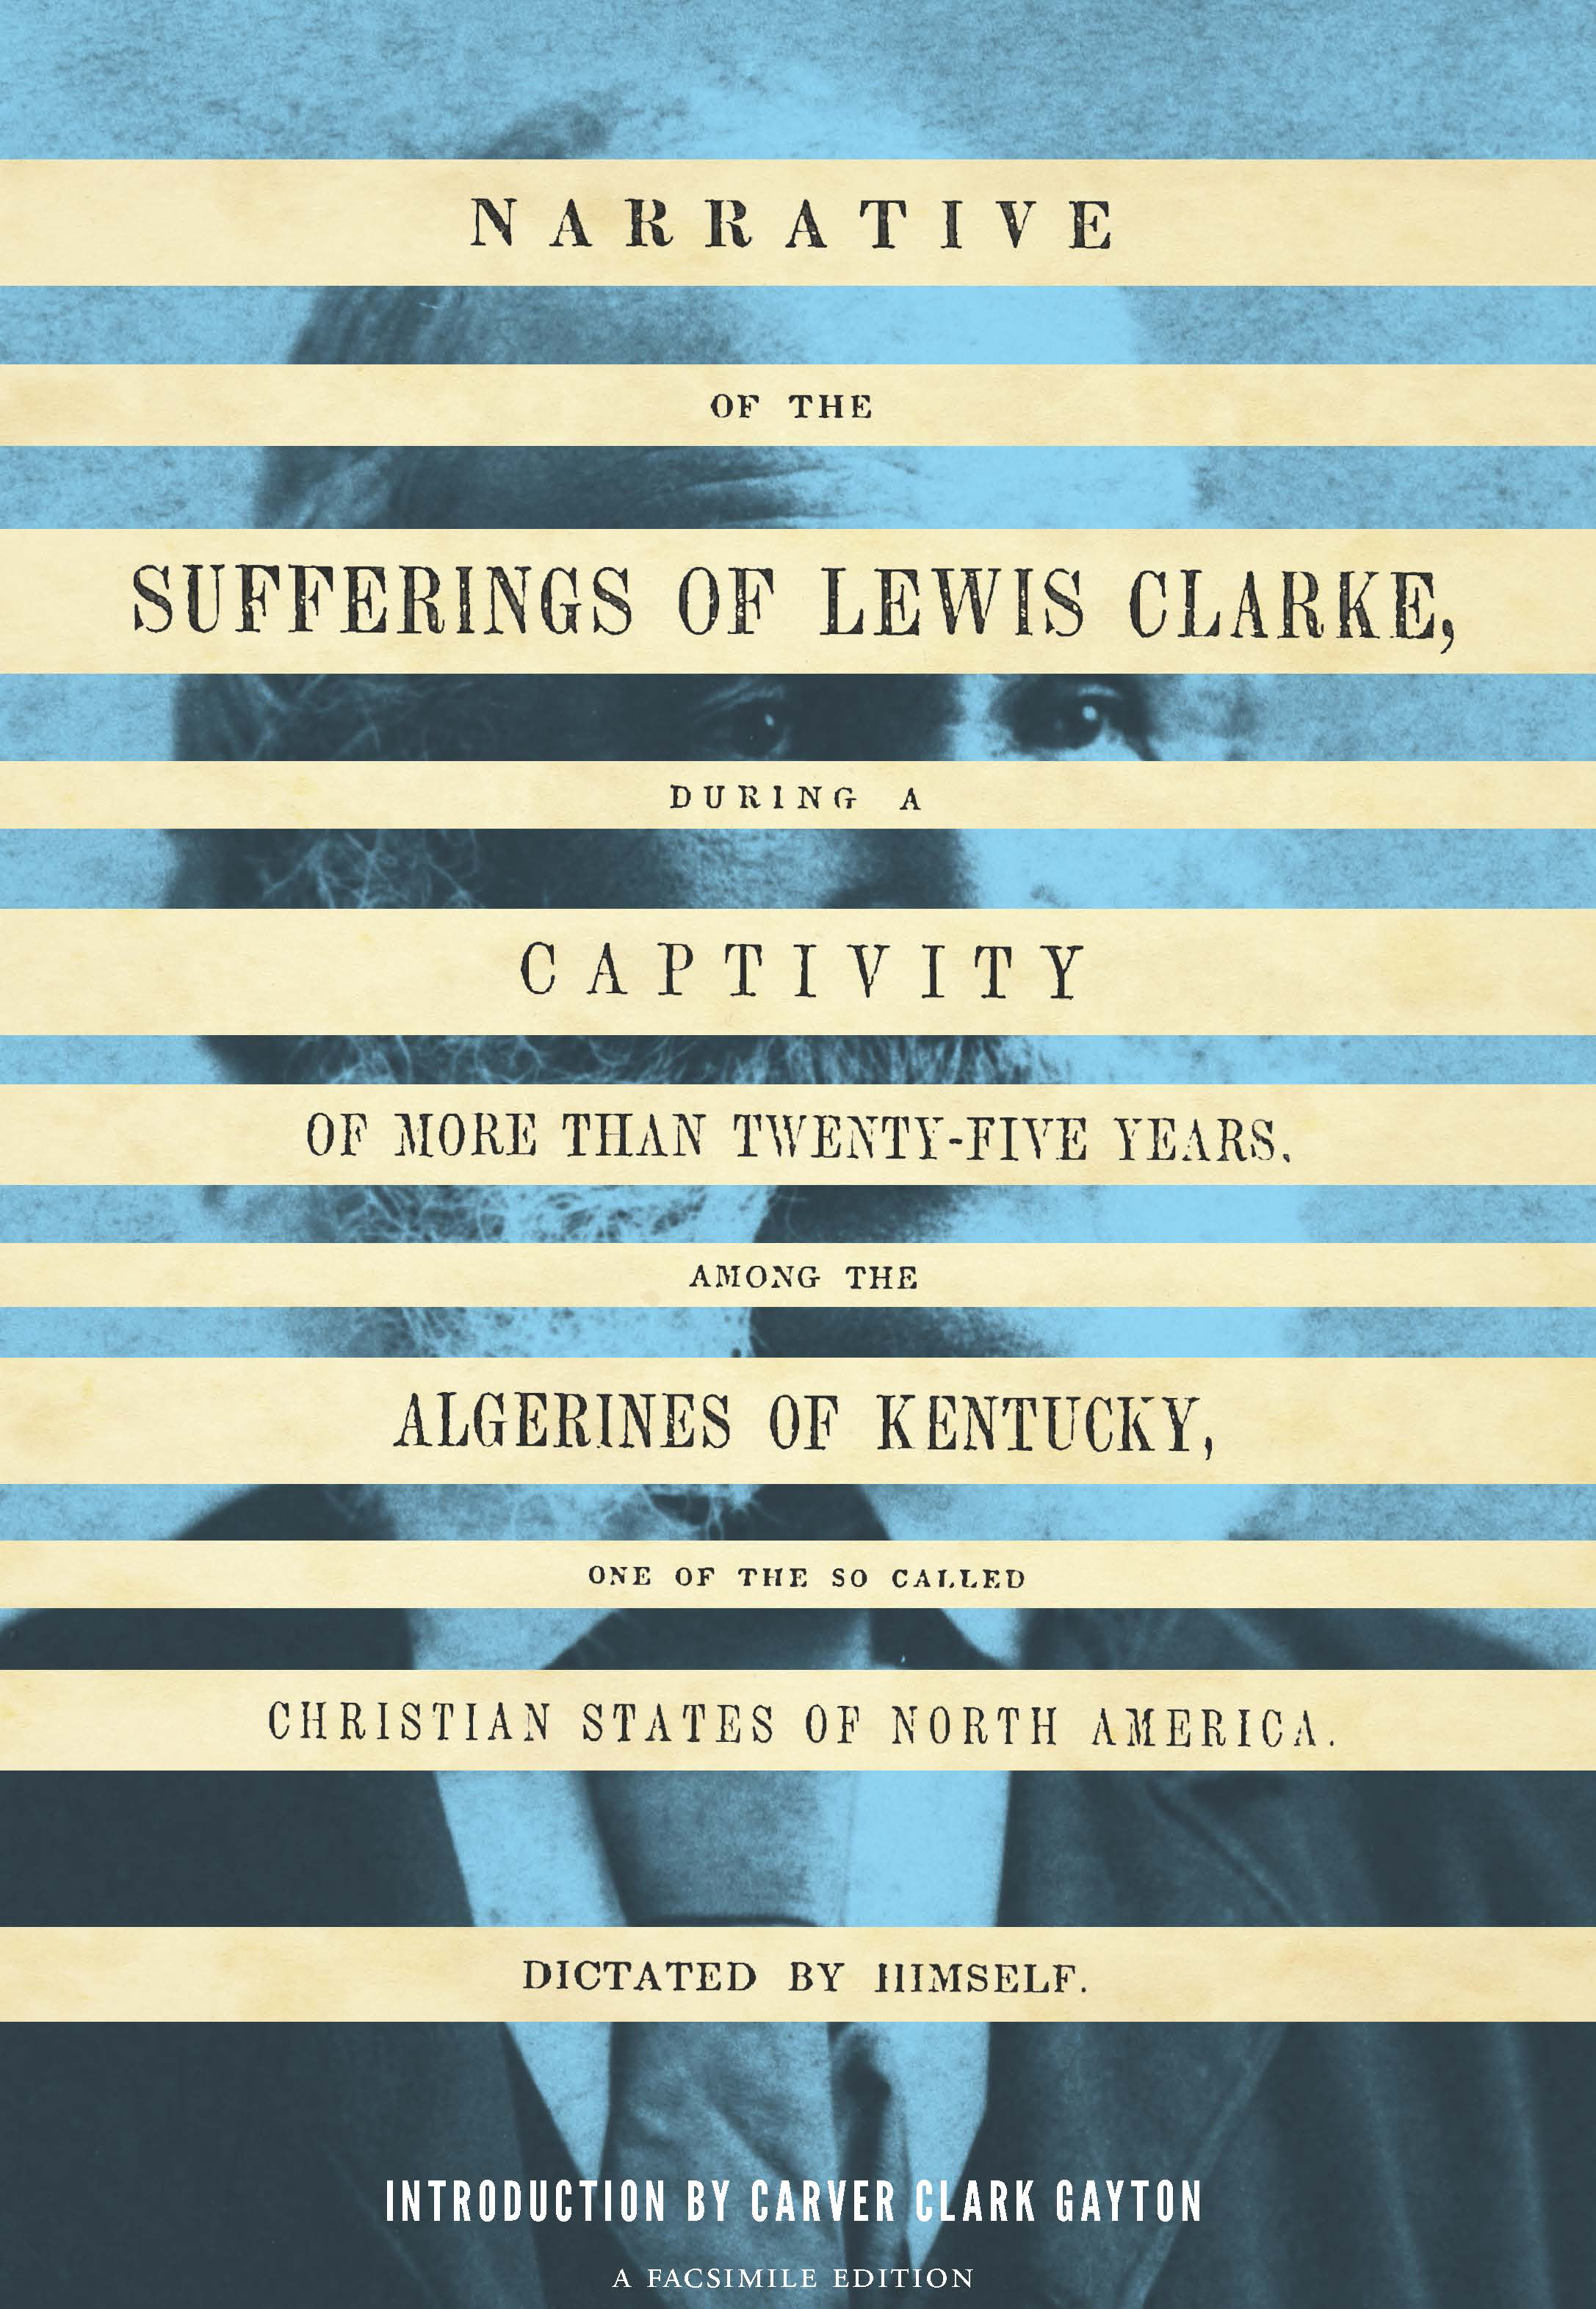 uw press books slave narrative Lewis Clarke University of Washington